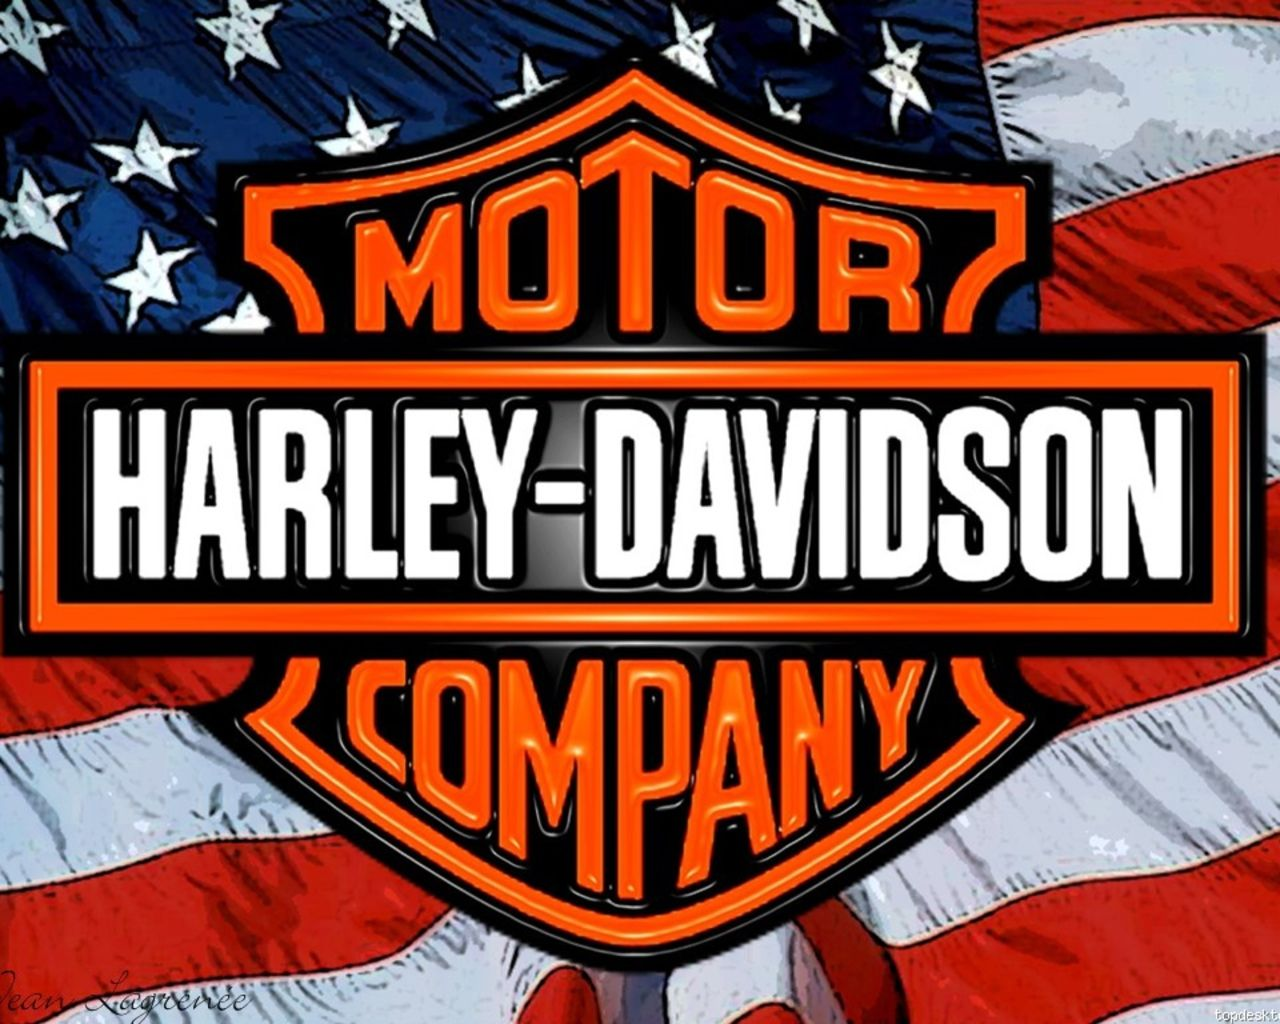 Collection of Harley Davidson Logo Desktop Wallpaper on HDWallpapers